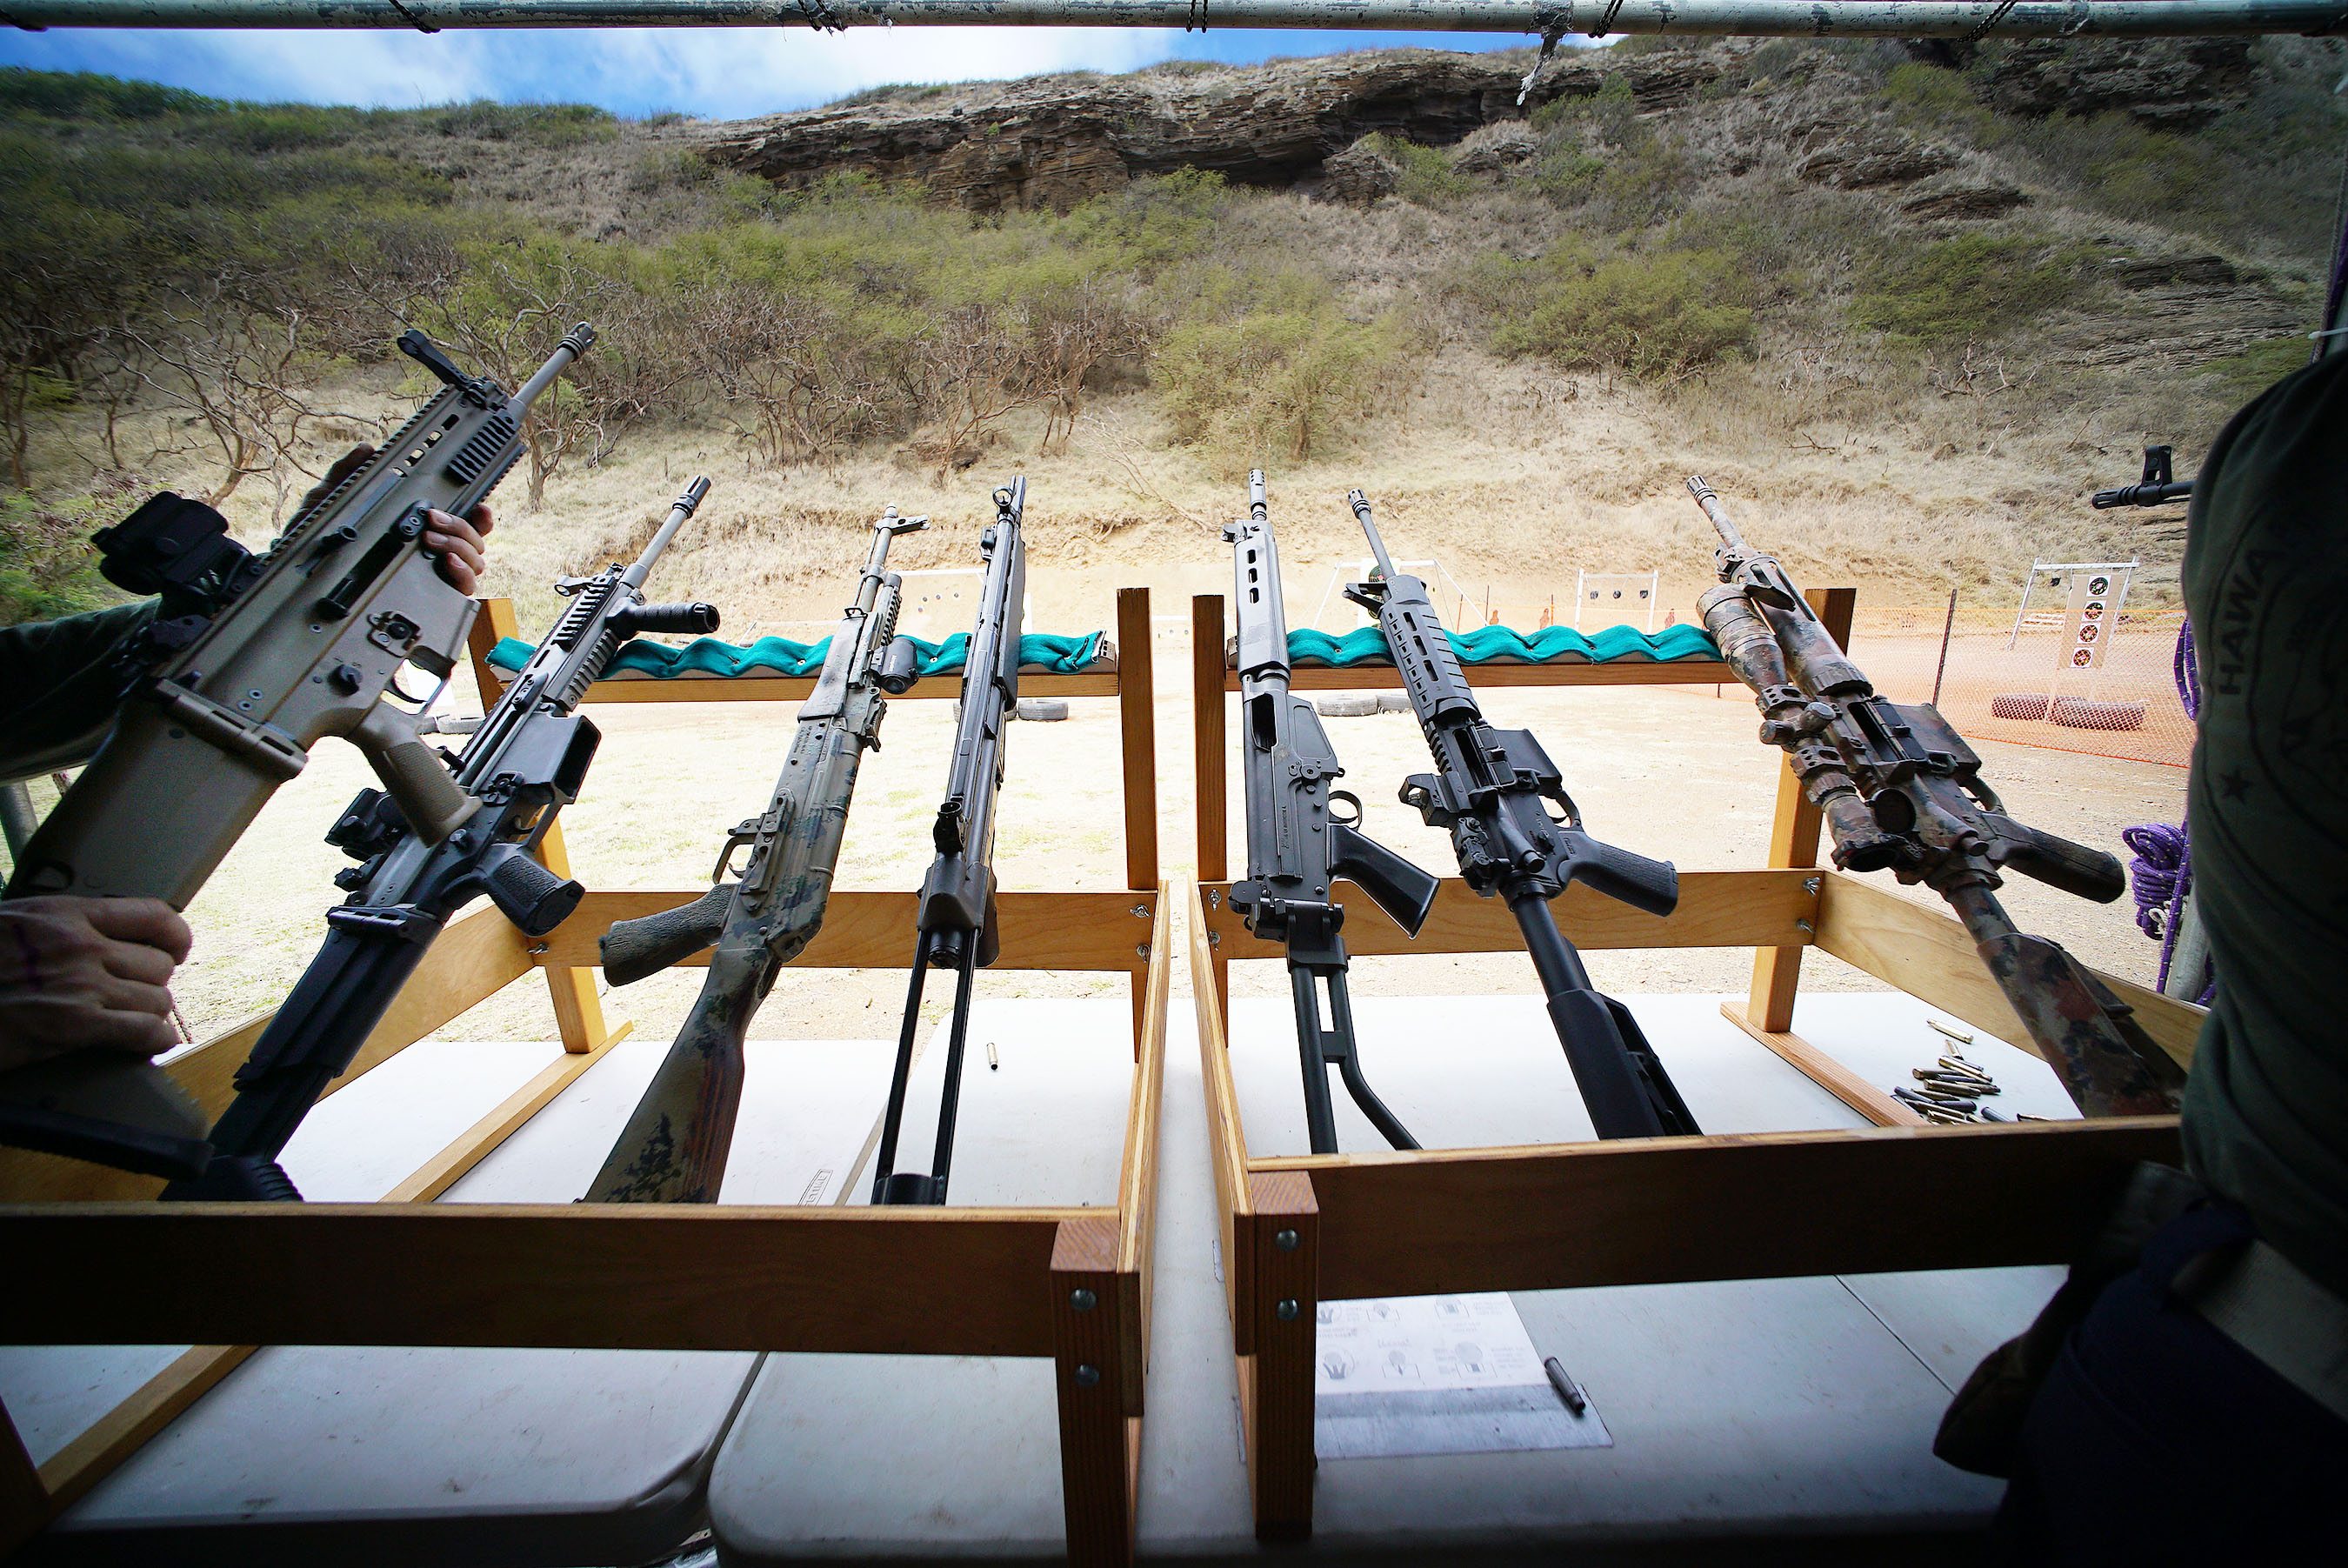 <p>An array of rifles awaited visitors to the Hawaii Rifle Association's 23rd annual Shooting Sports Fair at the Koko Head Shooting Complex last weekend.</p>